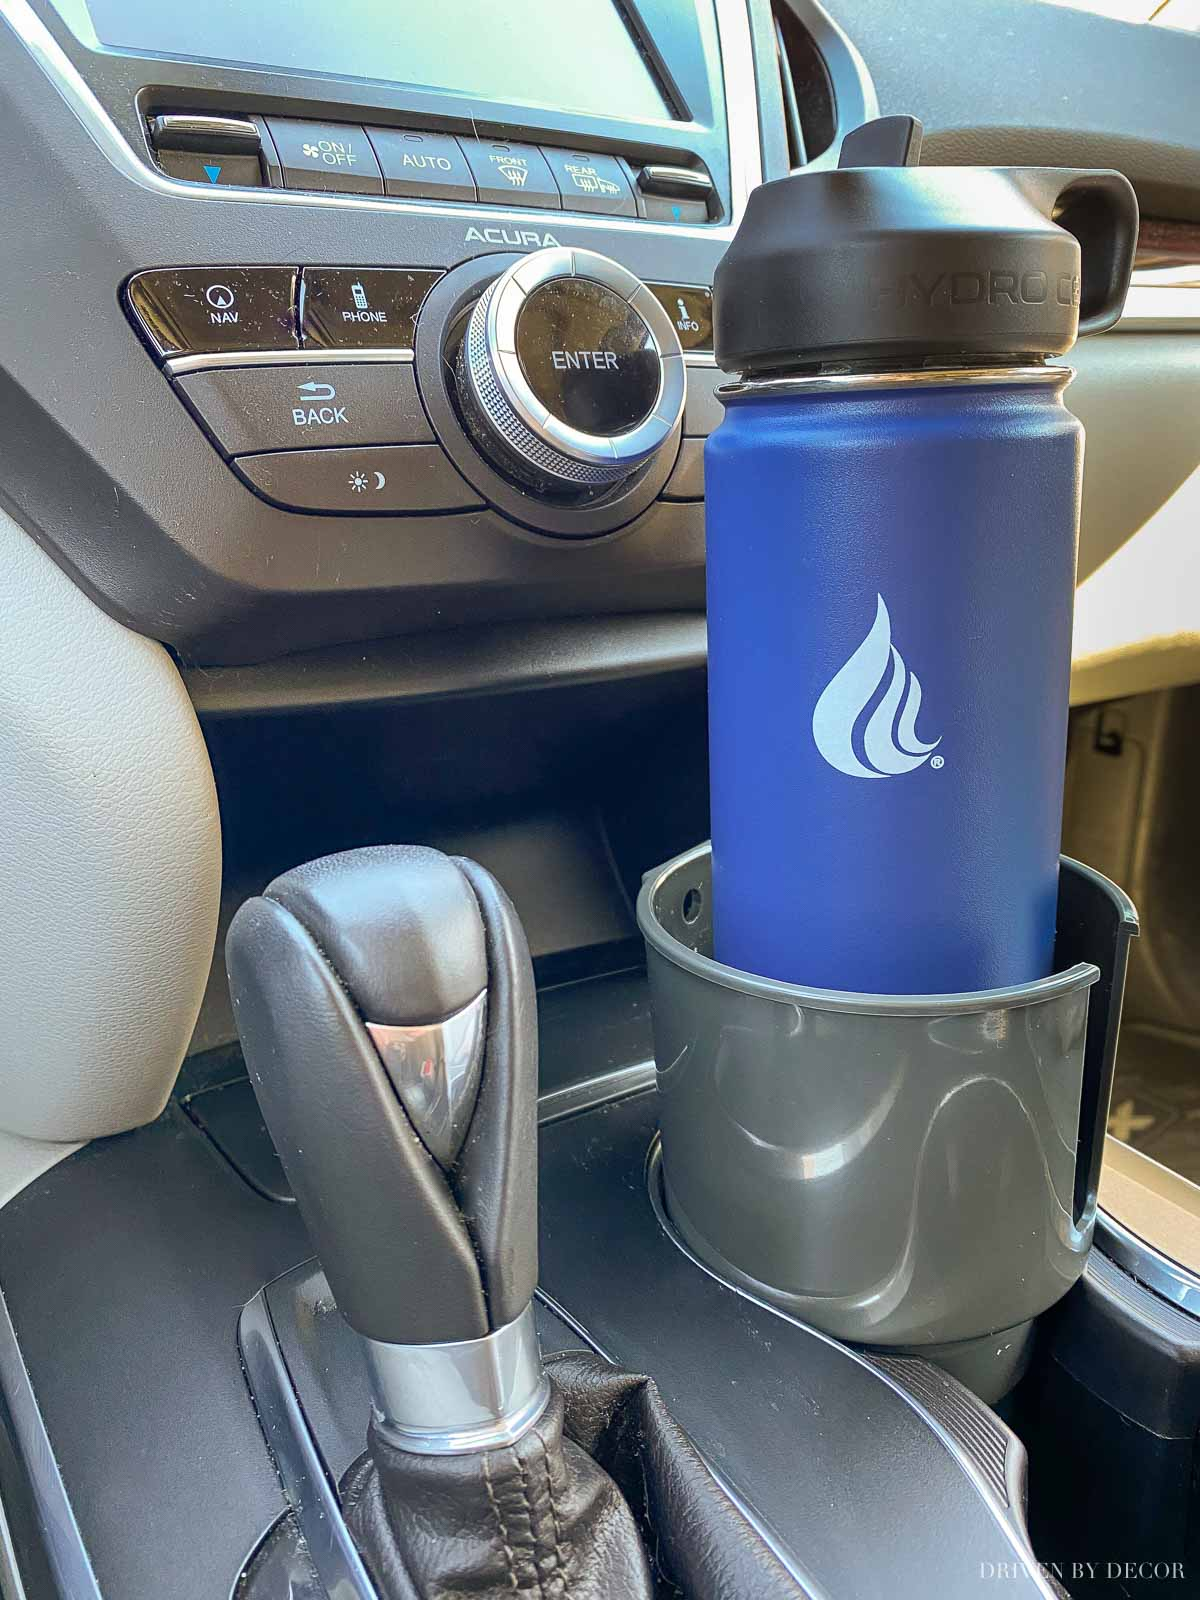 Love this car cup holder that fits large water bottles and mugs with handles too!